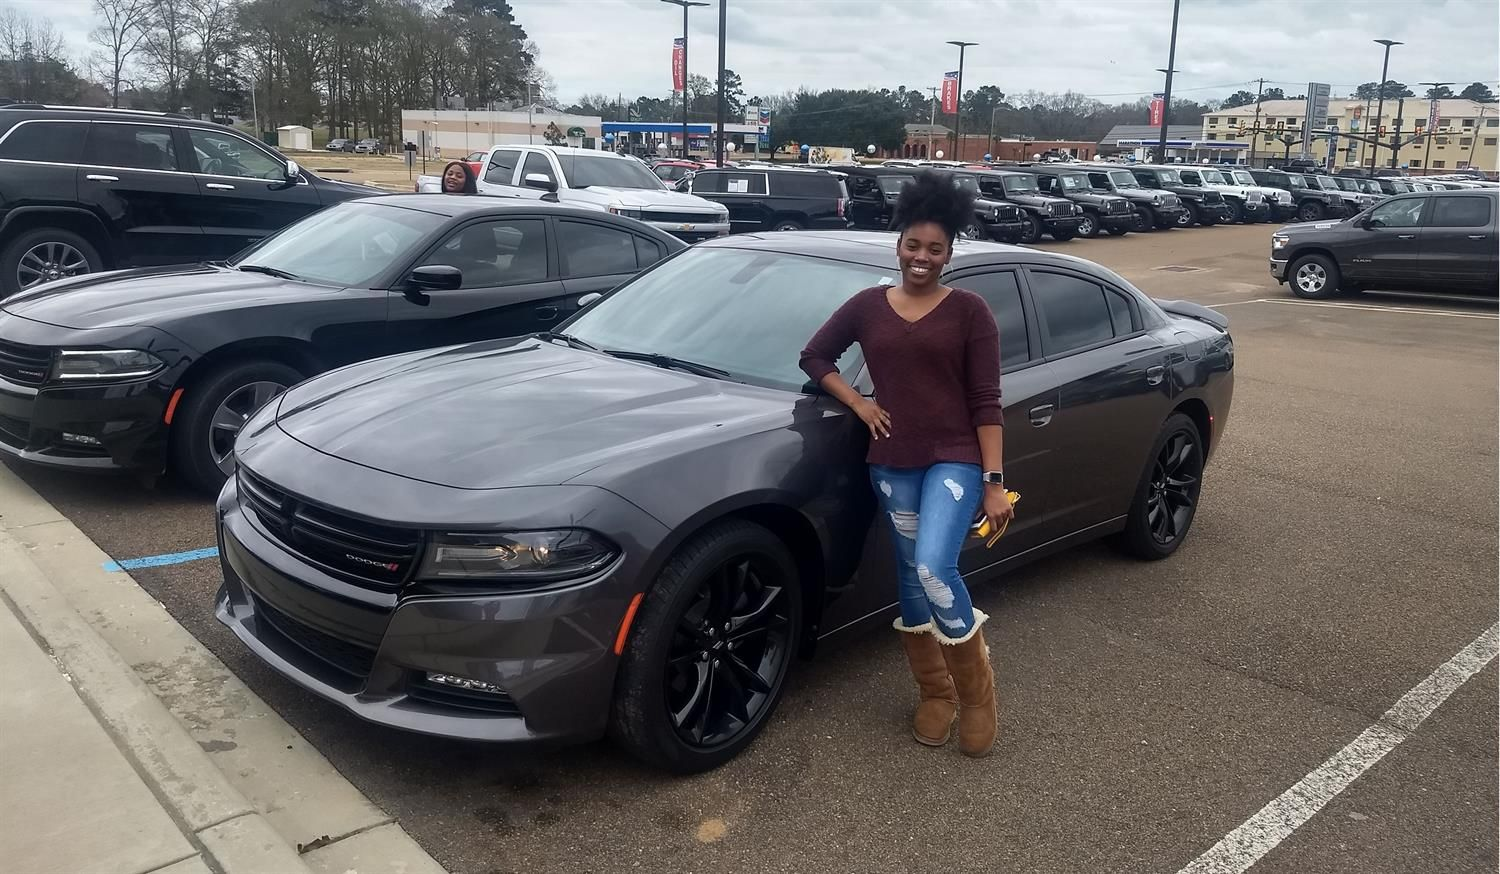 Daja S New 2017 Dodge Charger Congratulations And Best Wishes From Rainbow Chrysler Dodge Je Chrysler Dodge Jeep Dodge Charger Congratulations And Best Wishes